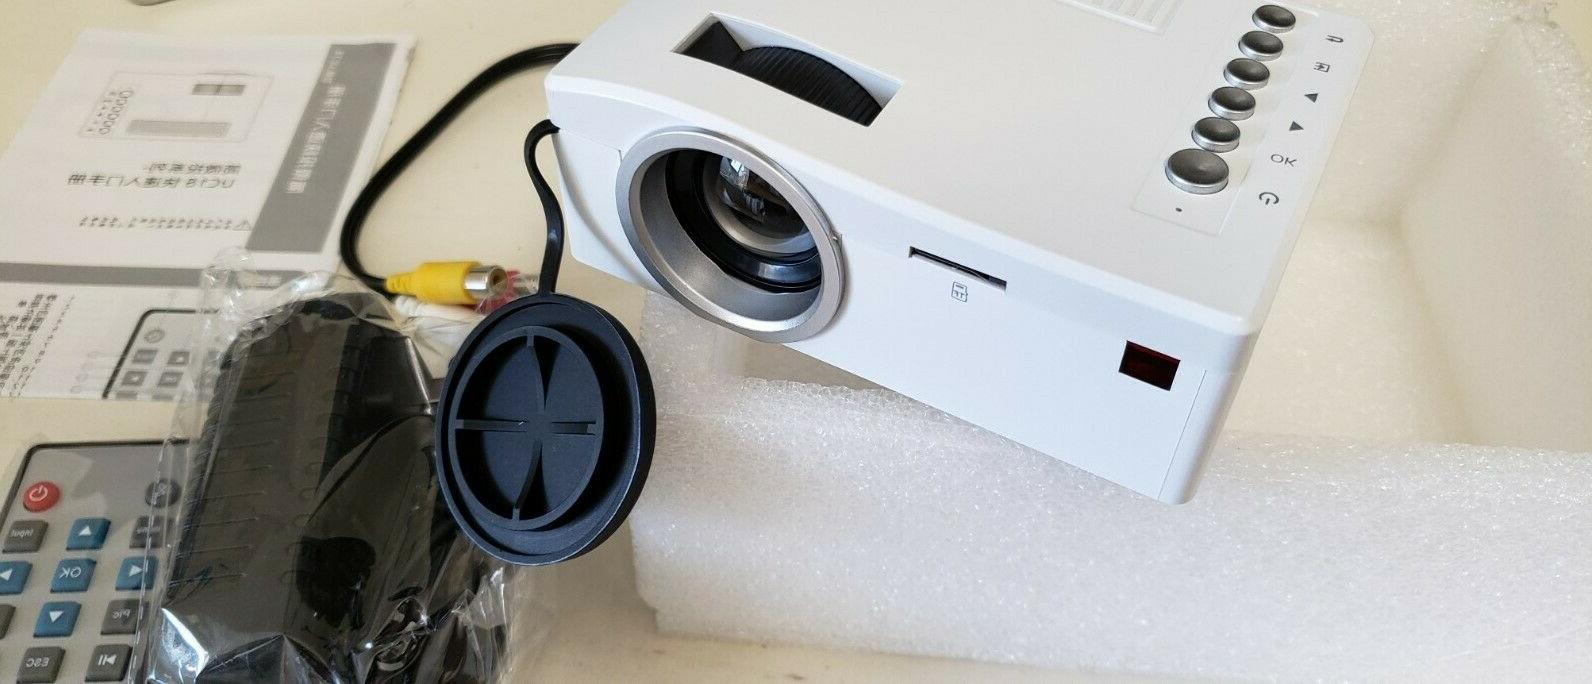 Time Play LED Projector